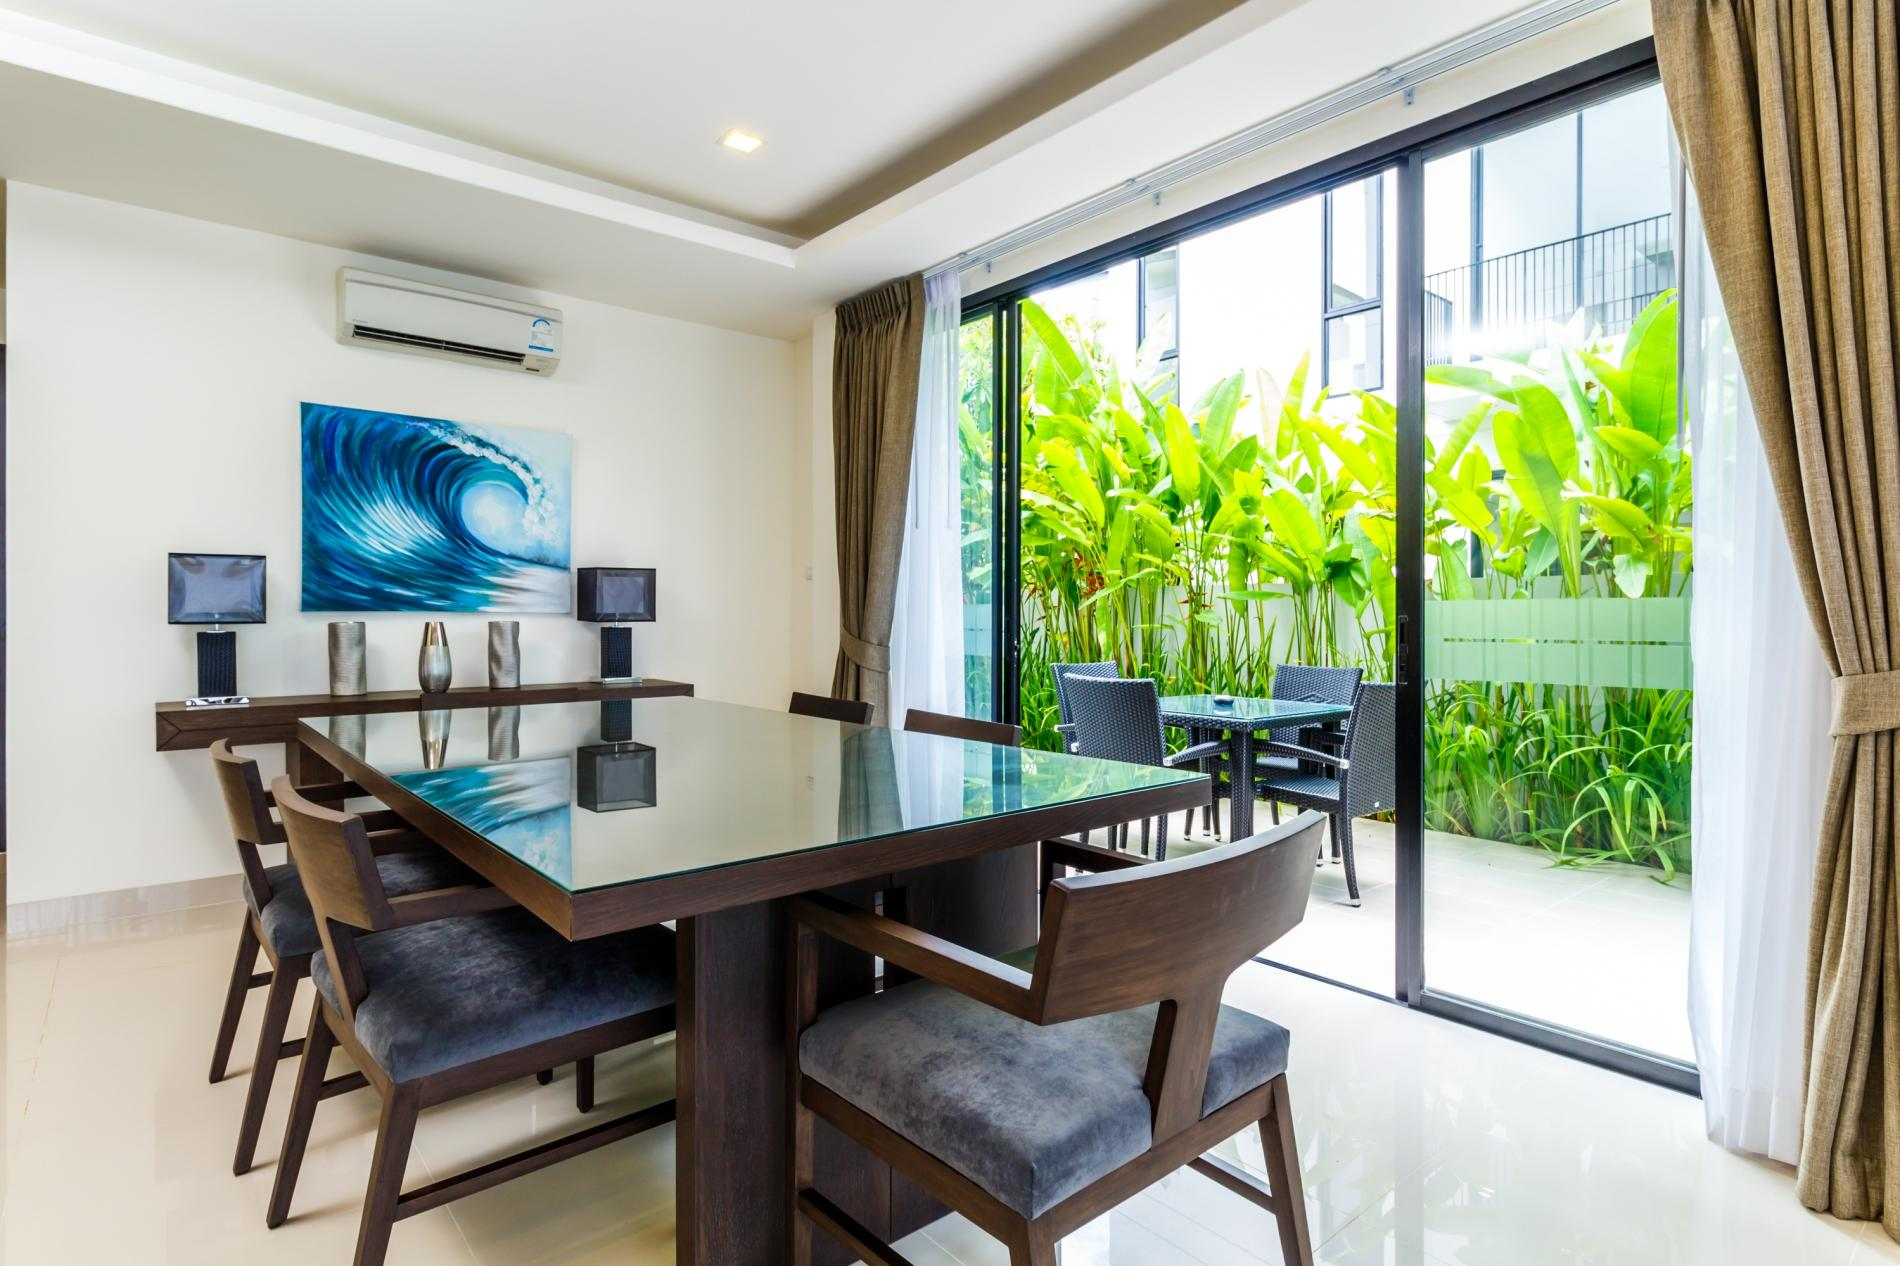 LP101 - Private rooftop pool villa in Laguna for 9 people, near restaurants and shops photo 5776945